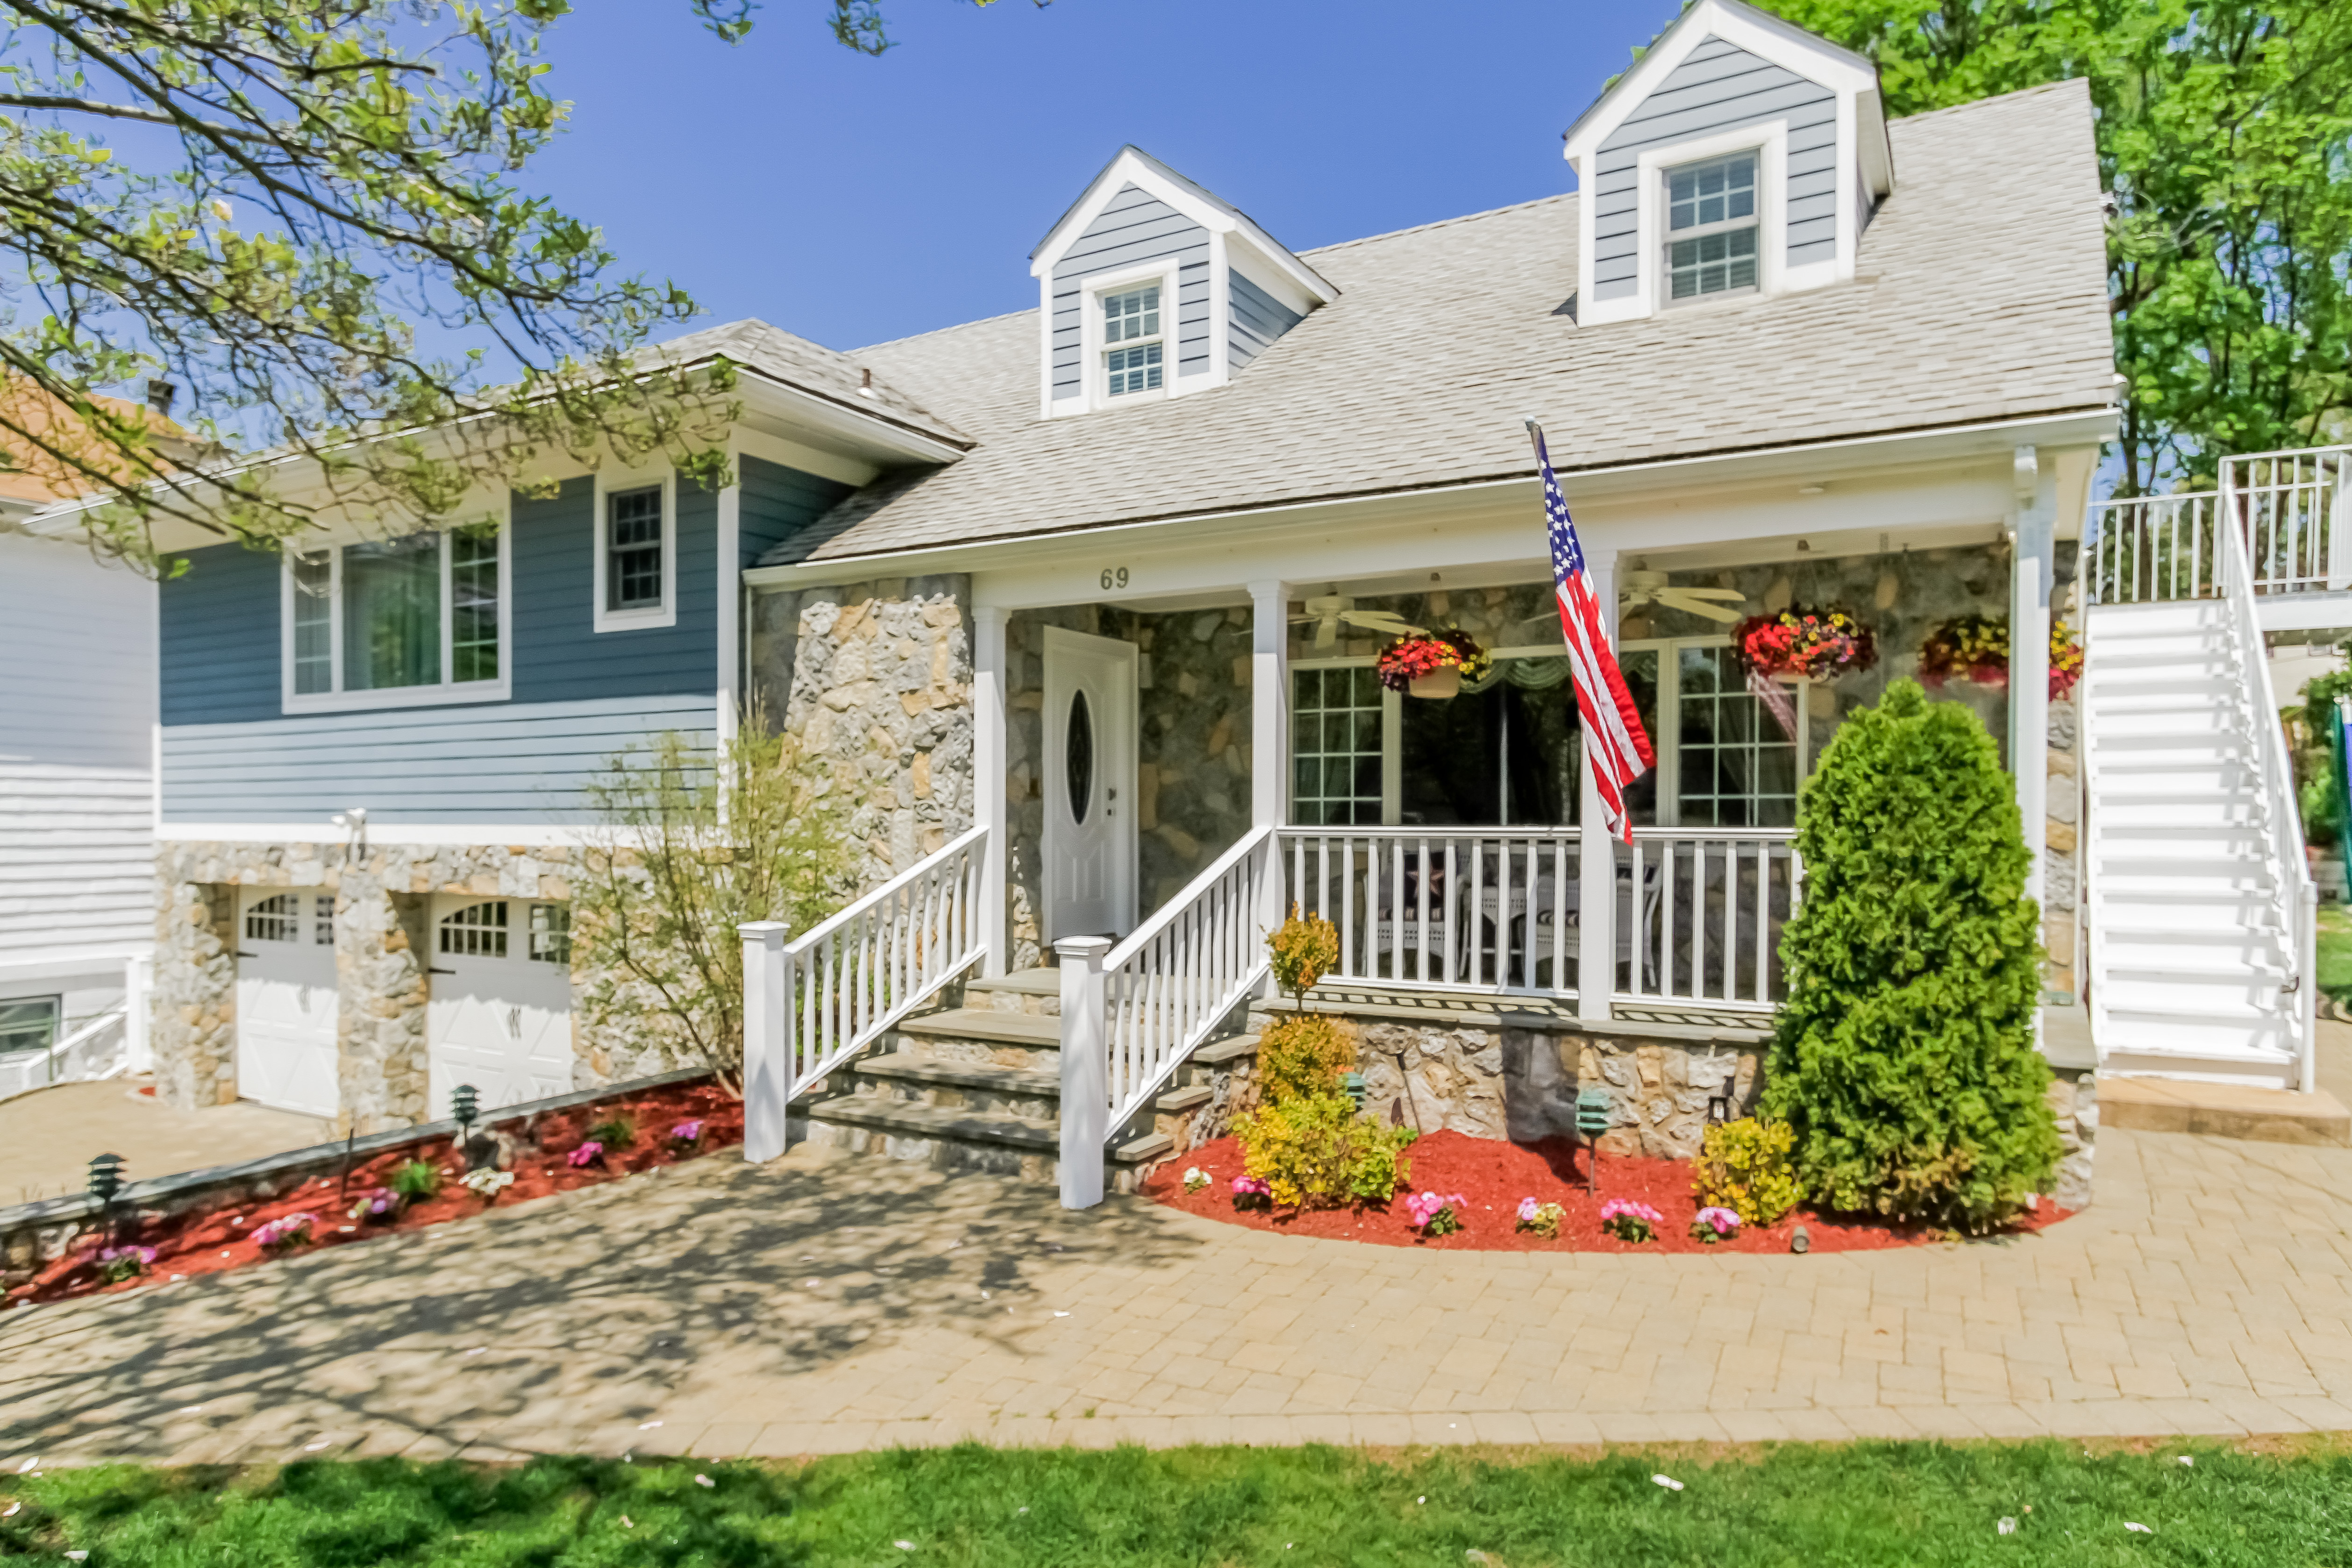 Single Family Home for Sale at Tastefully Renovated Tri-Level Home 69 Woodruff Avenue Scarsdale, New York 10583 United States